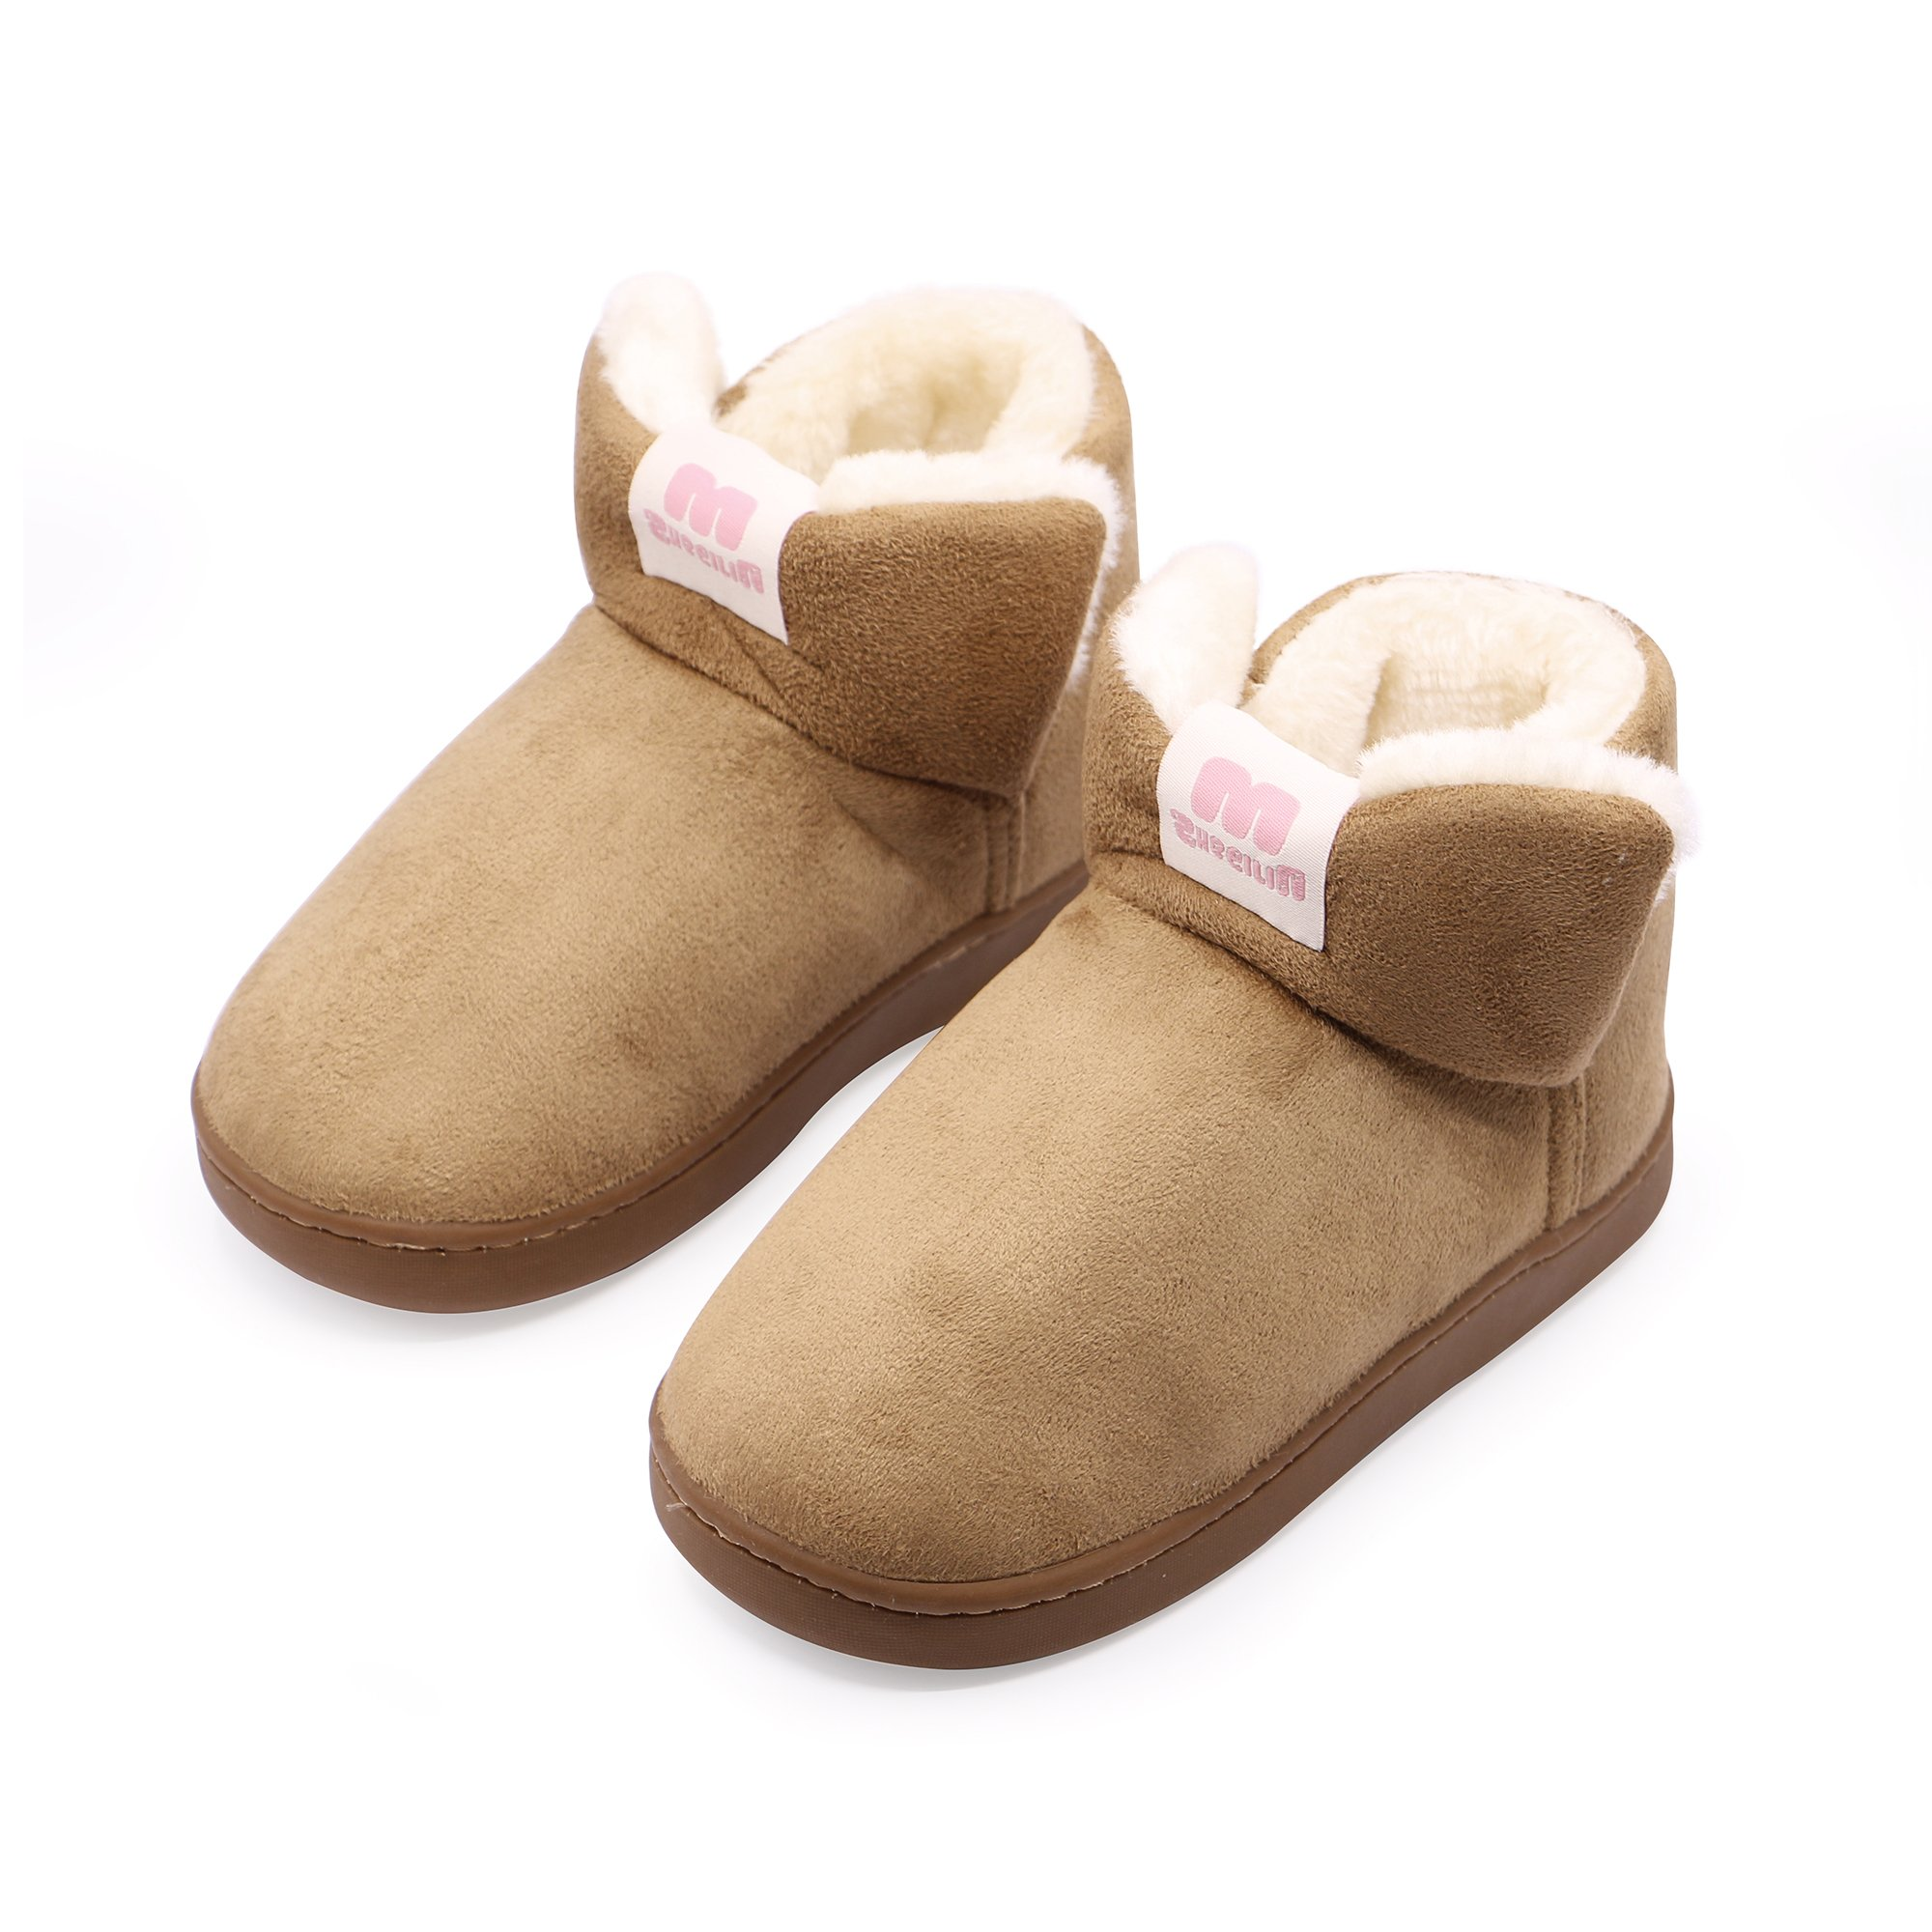 OSHOW Kids Slippers Cotton House Slippers Toddlers Warm Fluffy Indoor Outdoor Slippers Boots